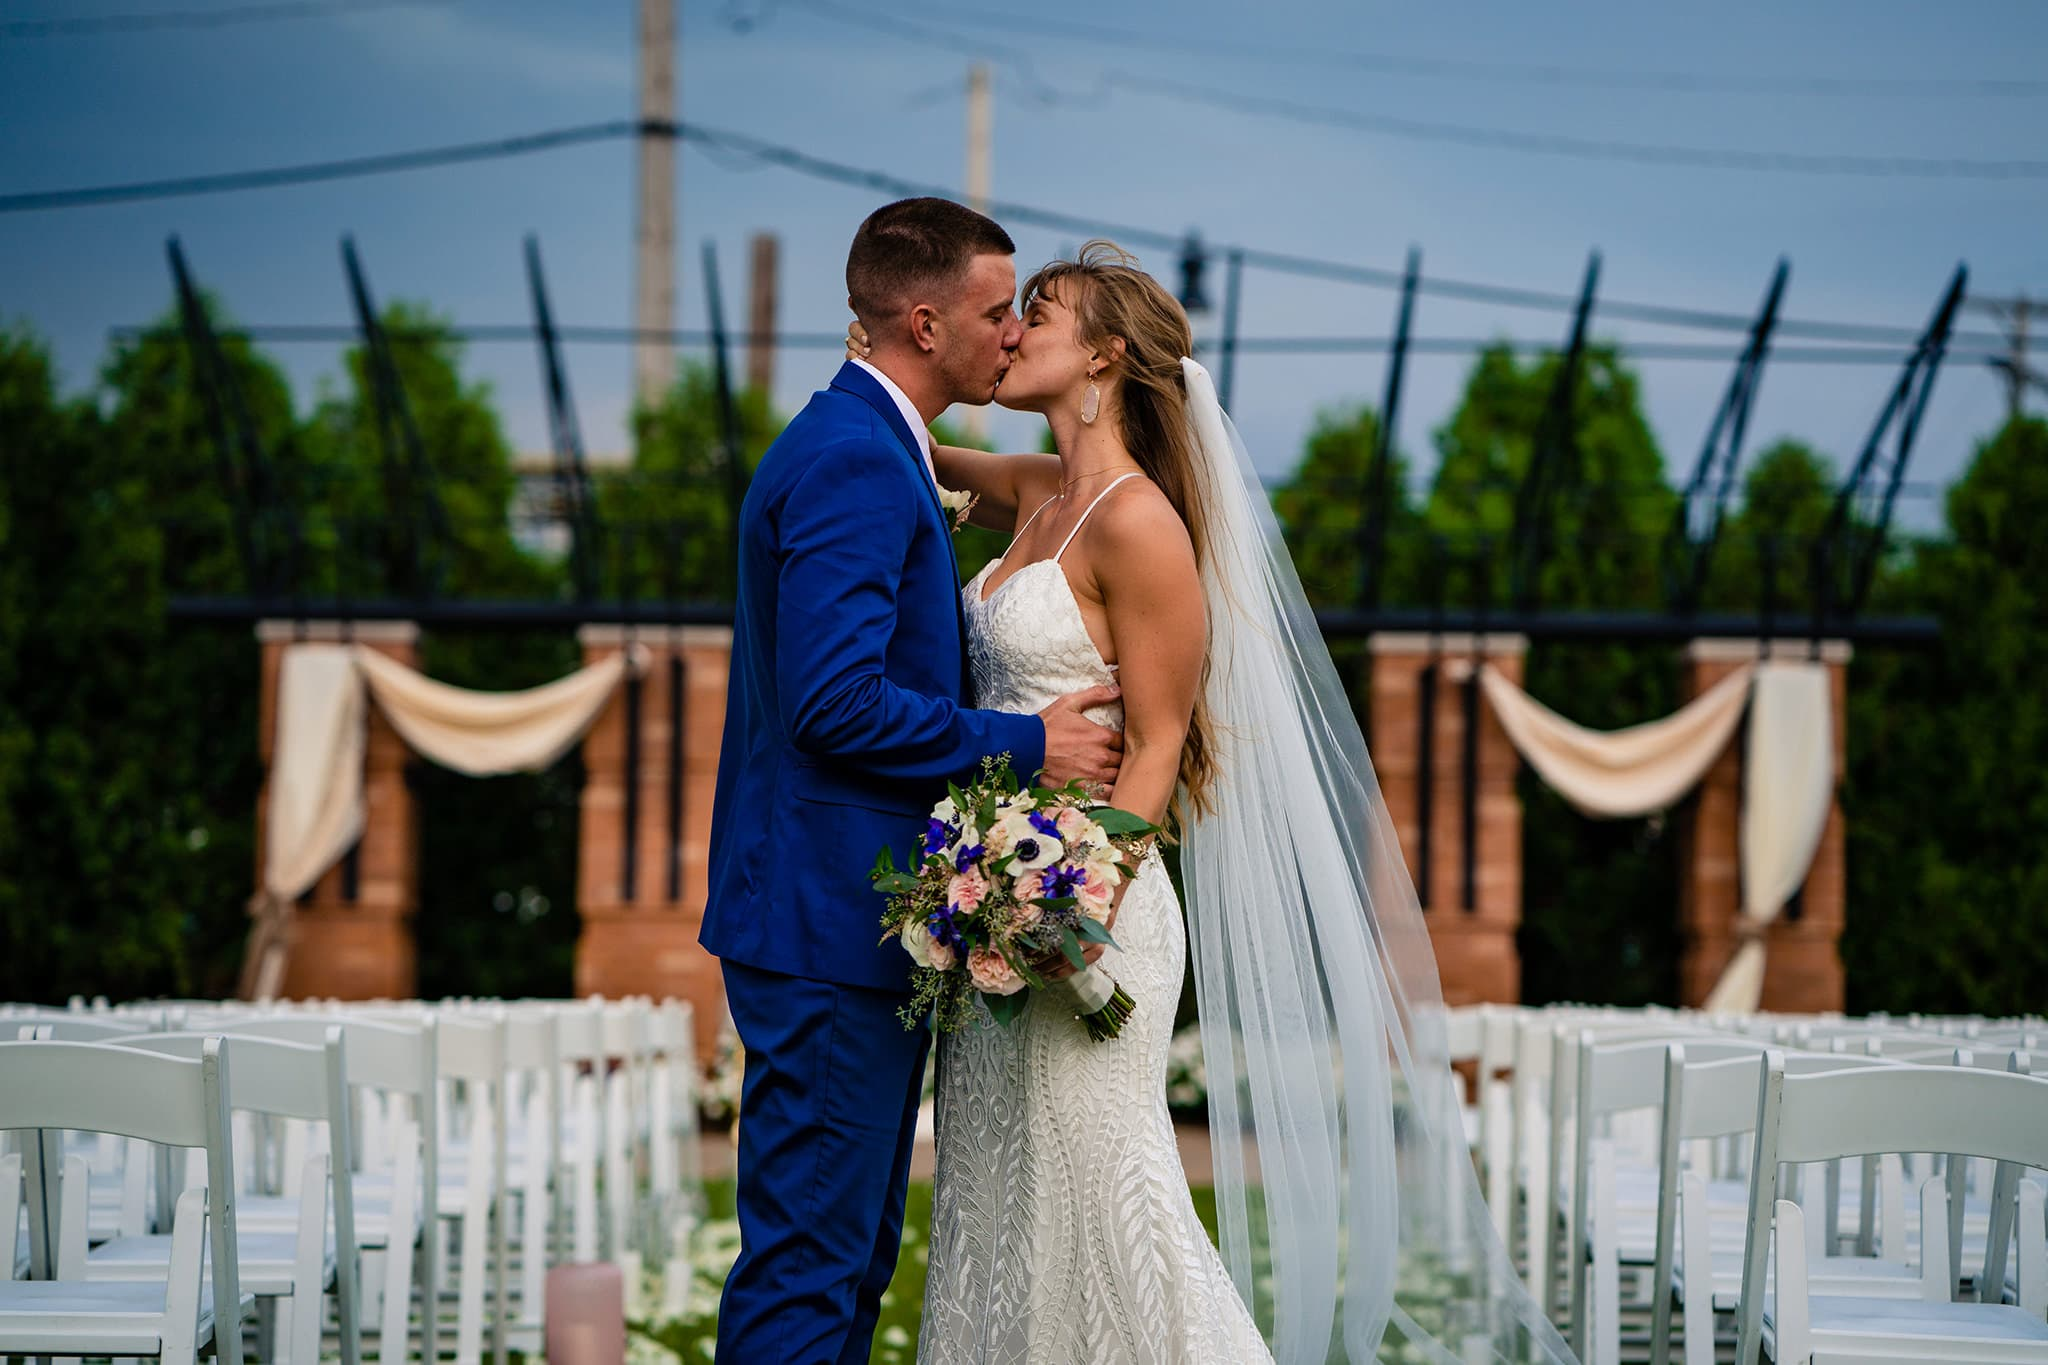 Steamplant Weddings